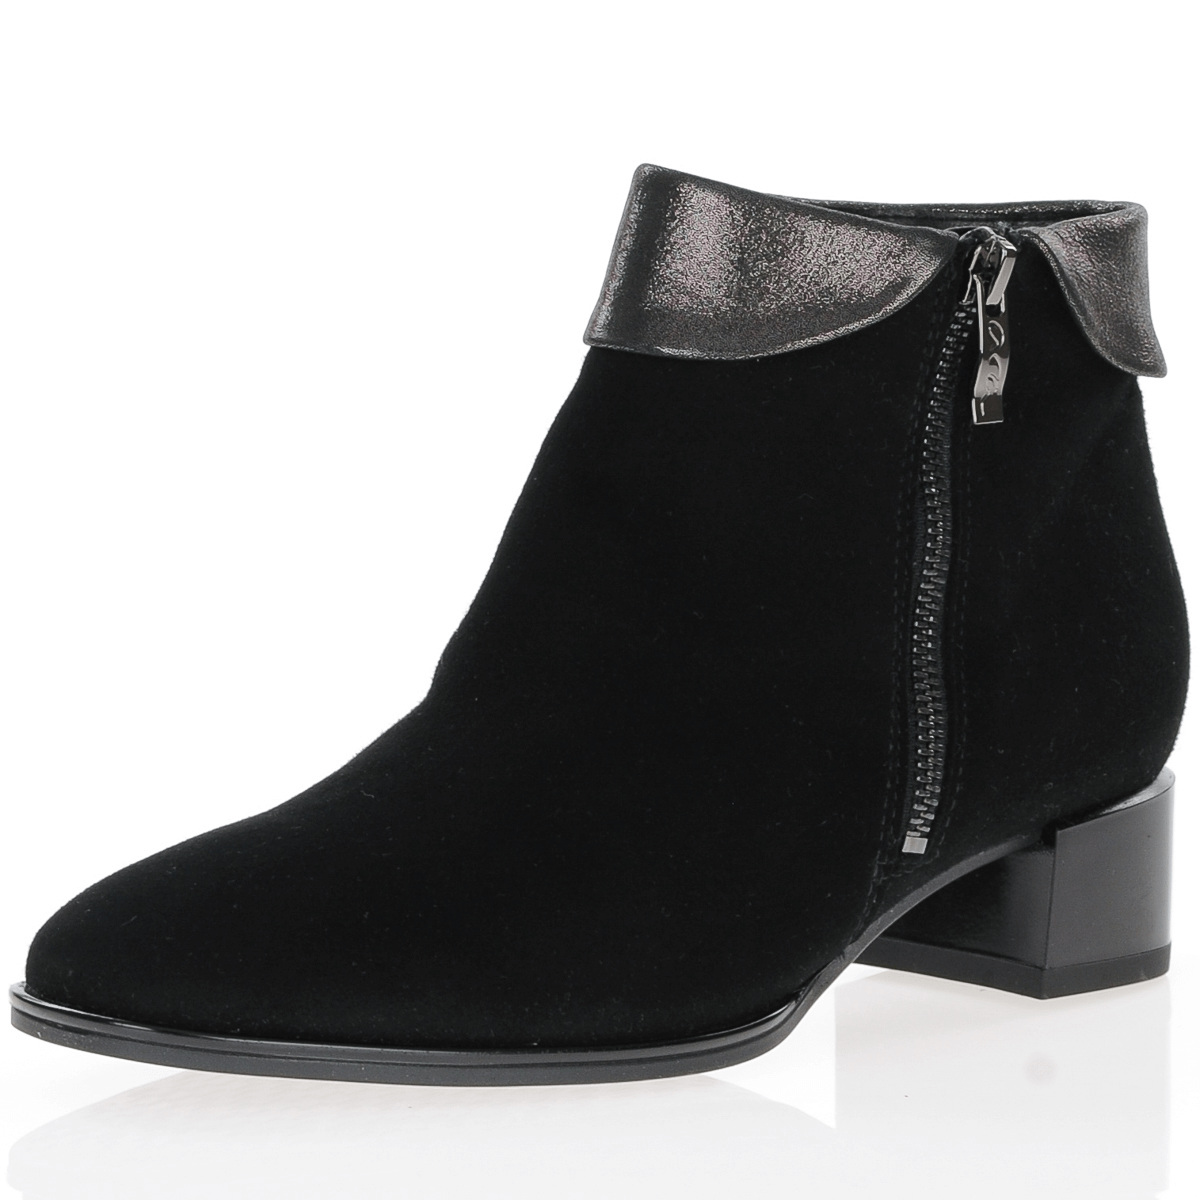 Ara - 16656 Suede Ankle Boots, Black